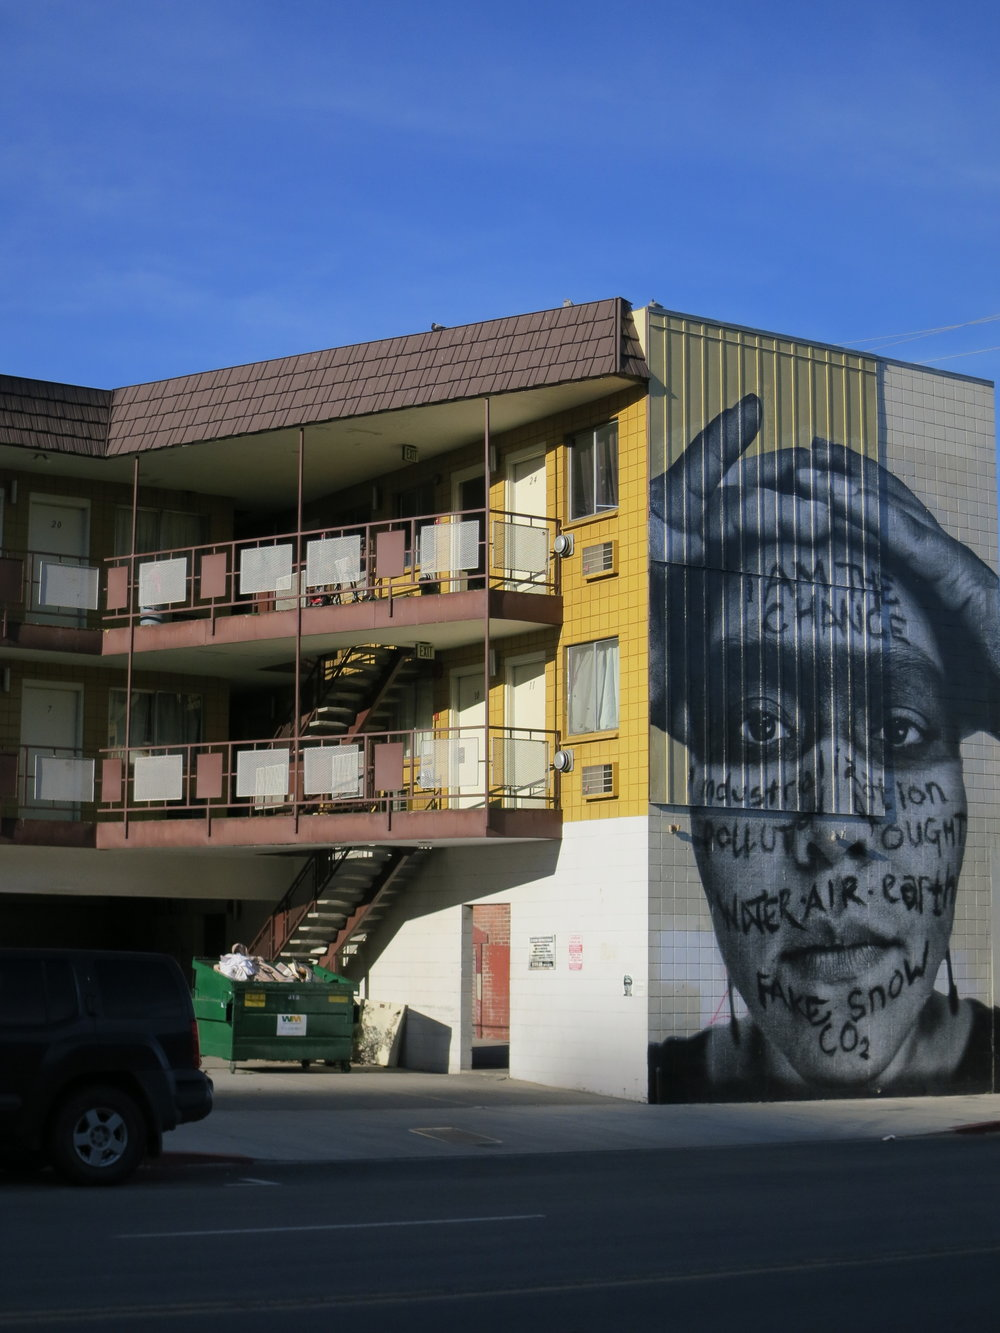 A mural recently added to the side of a motel in downtown Reno, even as many motels, often the last rung before homelessness, are being bulldozed away.